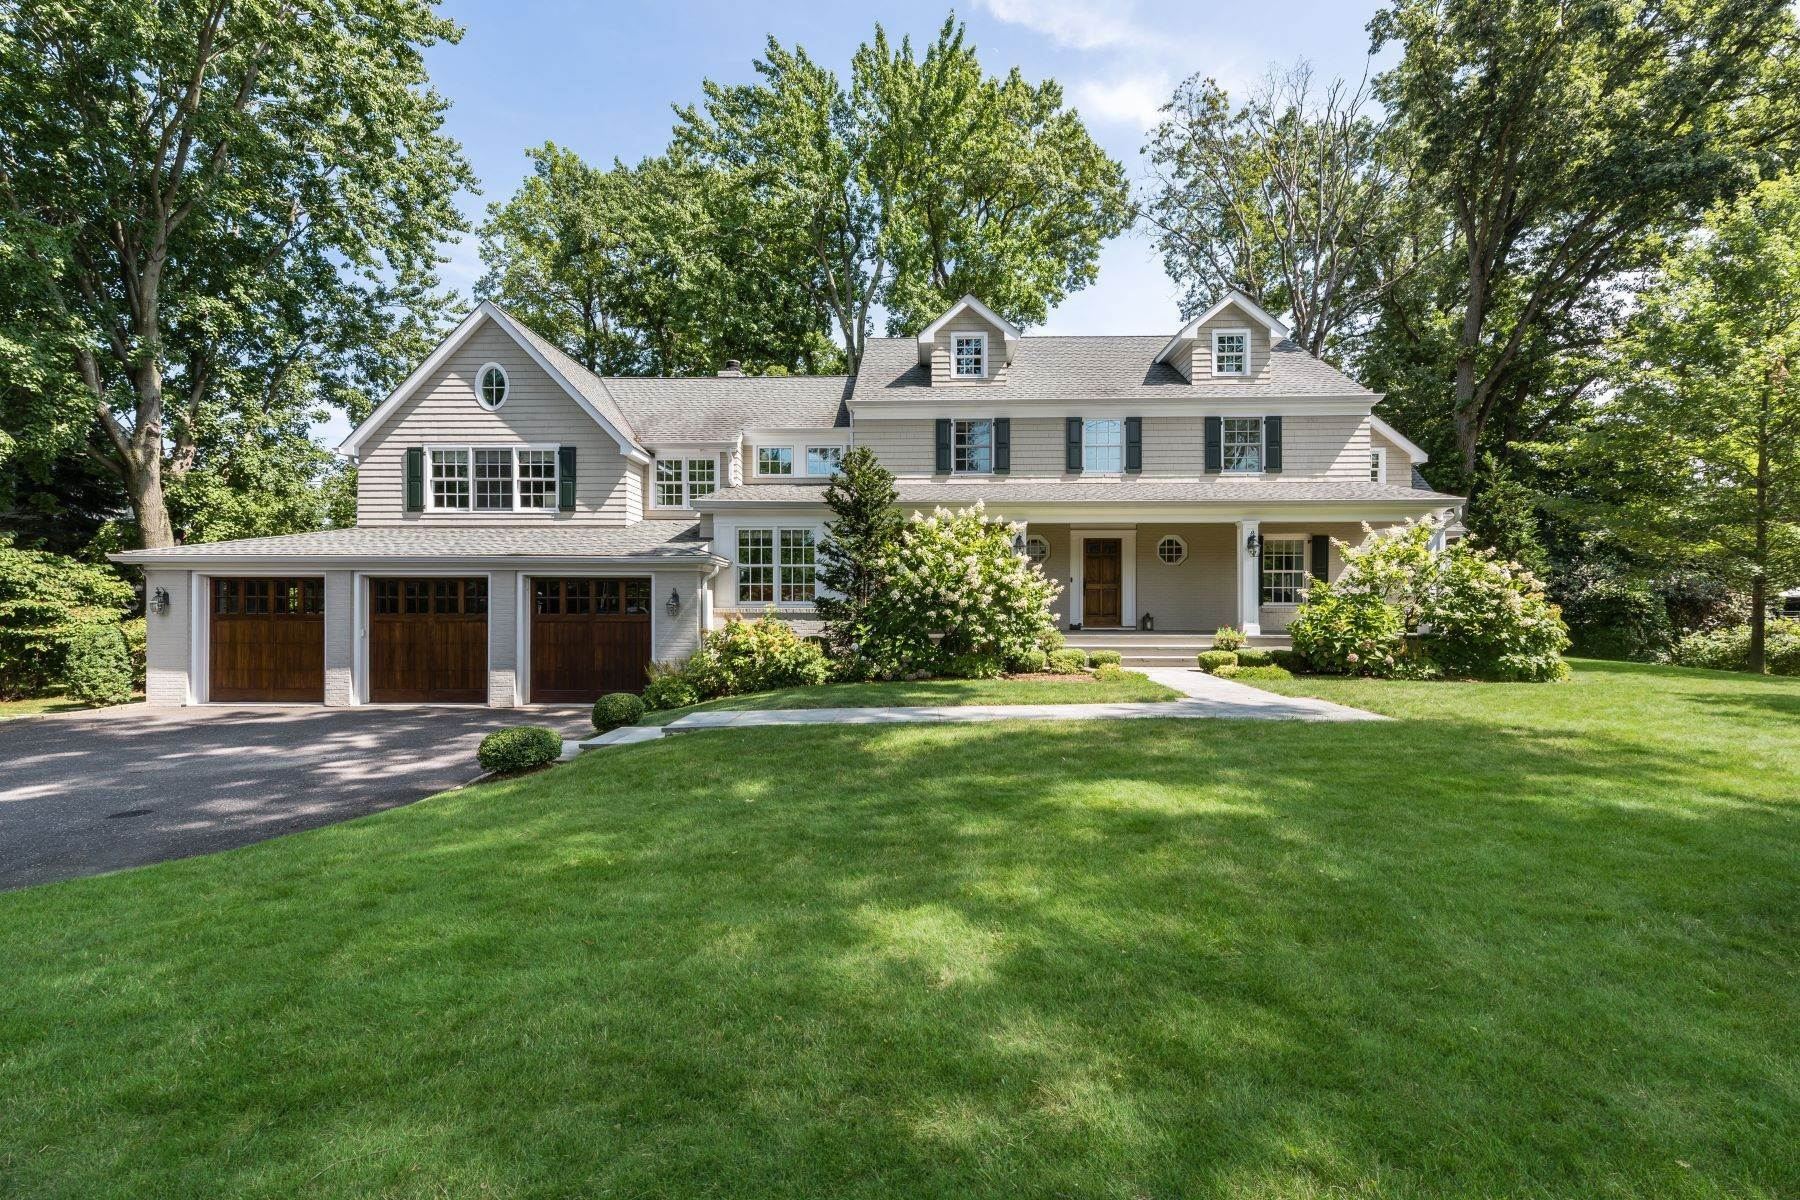 Single Family Homes for Sale at Attractive Home Offering Comfort and Elegance 221 Griffen Avenue Scarsdale, New York 10583 United States